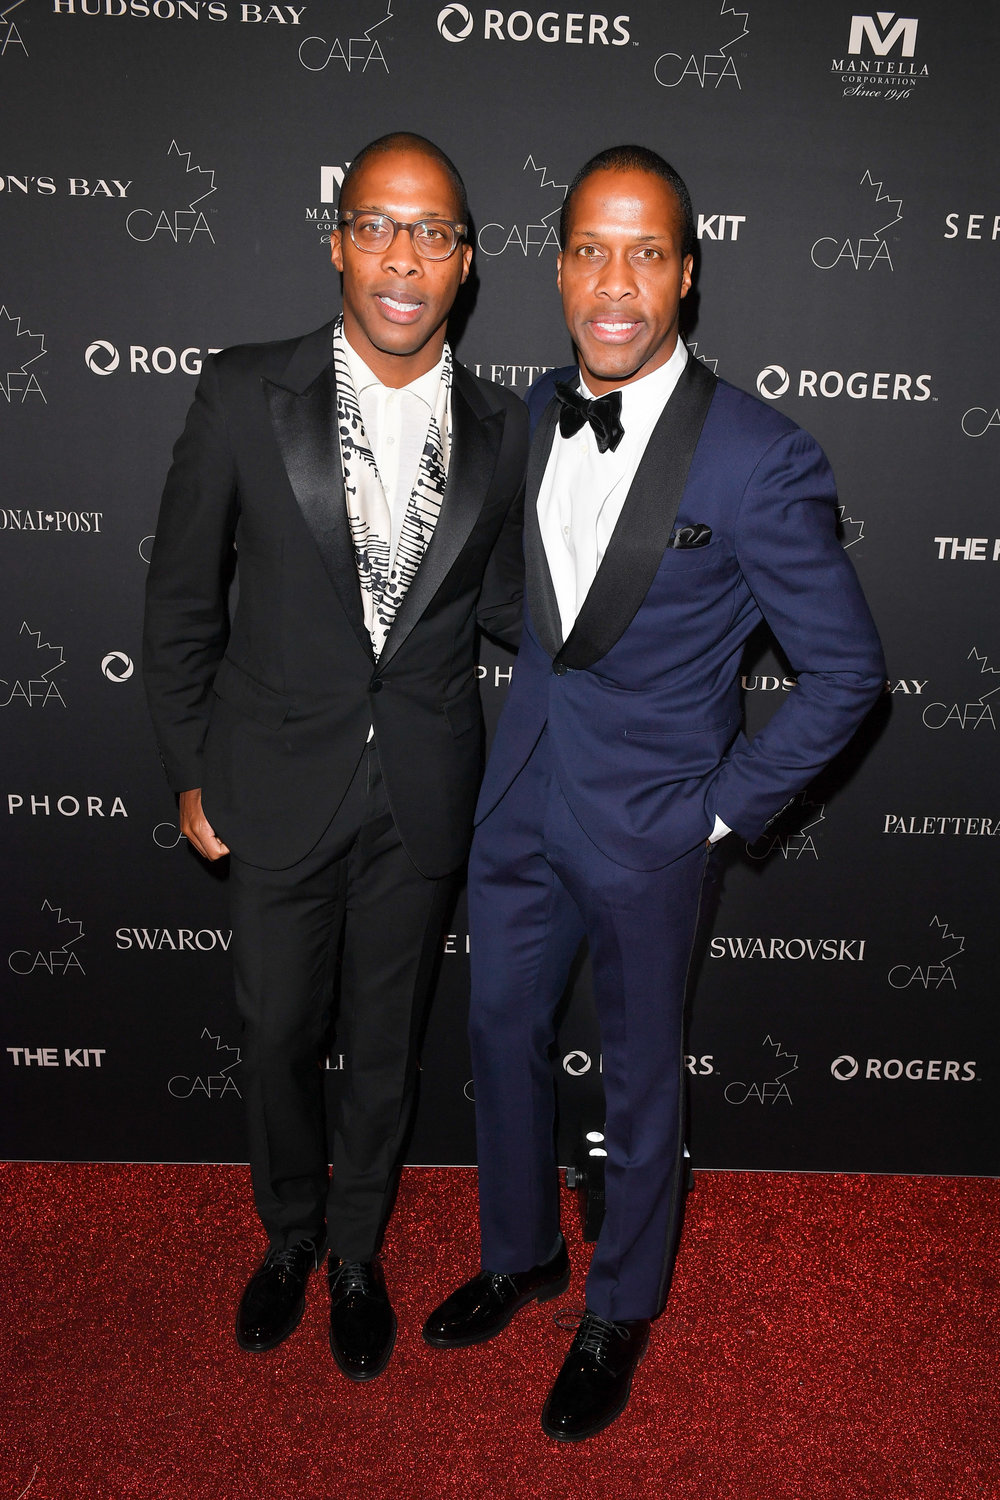 Byron and Dexter Peart, of WANT les essentials de la vie, attend the Canadian Arts and Fashion Awards at the Fairmount Royal York in Toronto